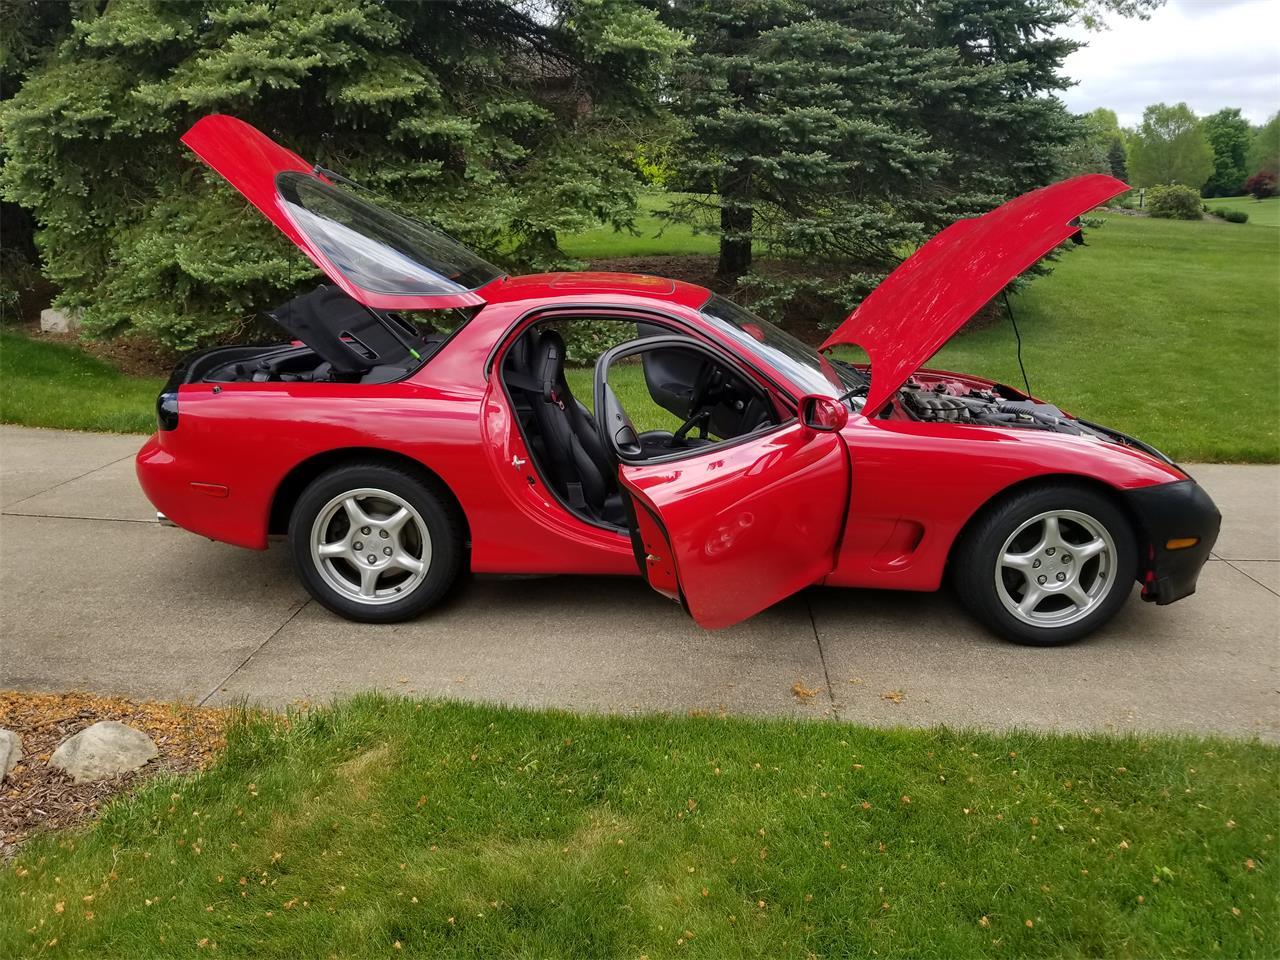 Large Picture of 1993 Mazda RX-7 located in Akron Ohio - $54,000.00 - NICV